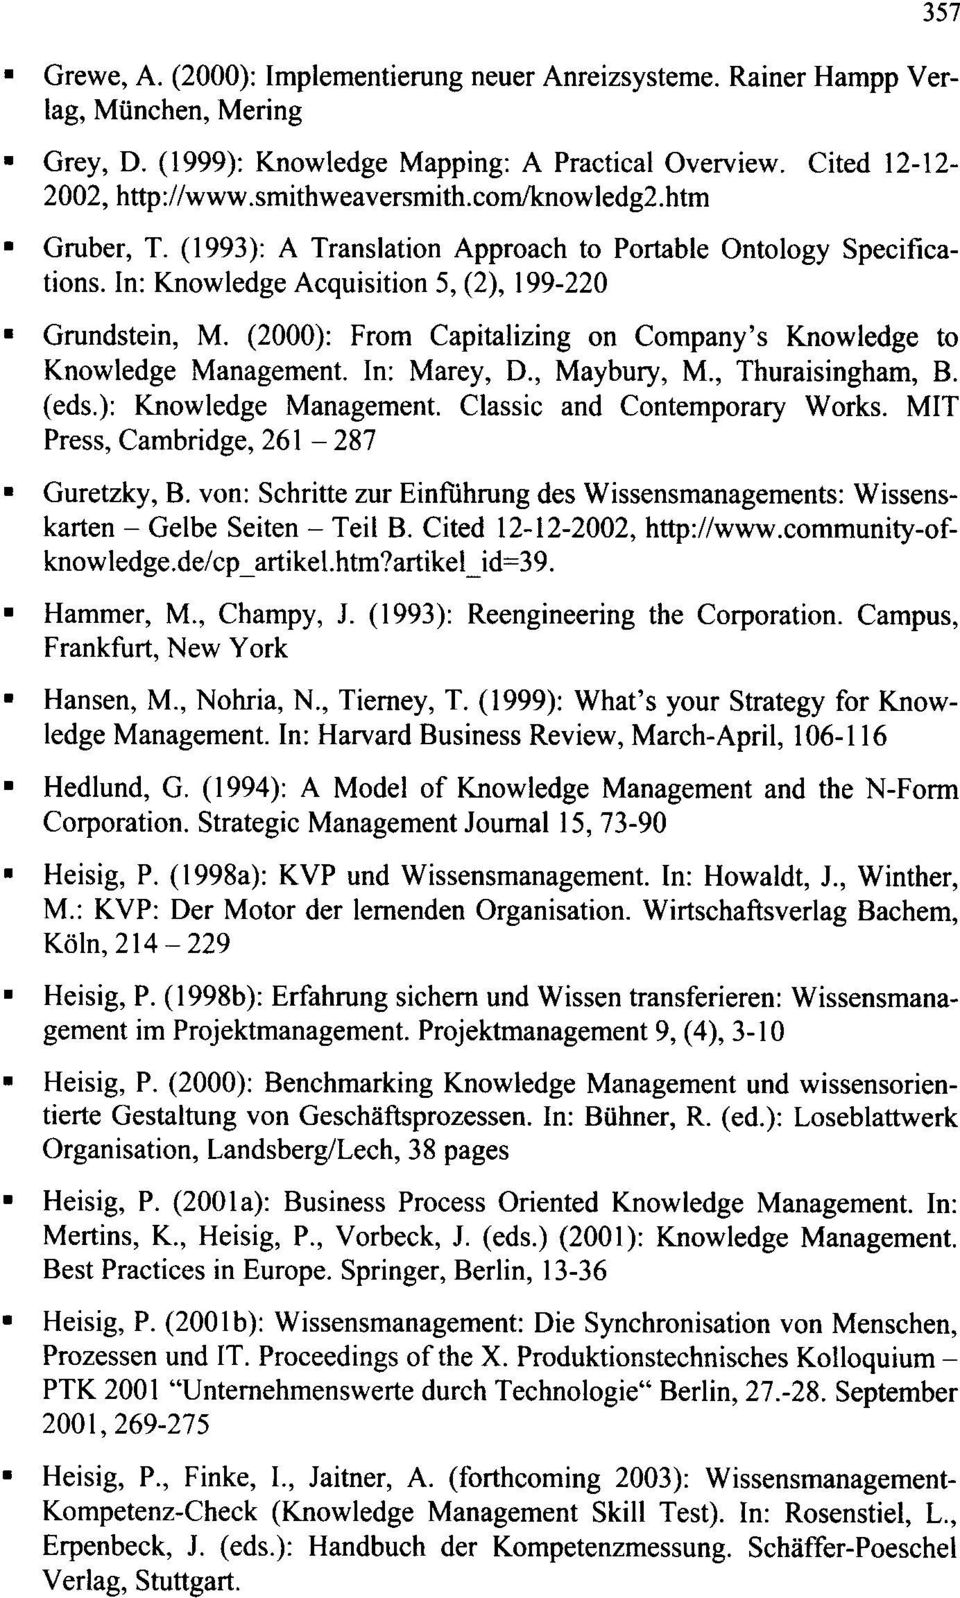 (2000): From Capitalizing on Company's Knowledge to Knowledge Management. In: Marey, D., Maybury, M., Thuraisingham, B. (eds.): Knowledge Management. Classic and Contemporary Works.